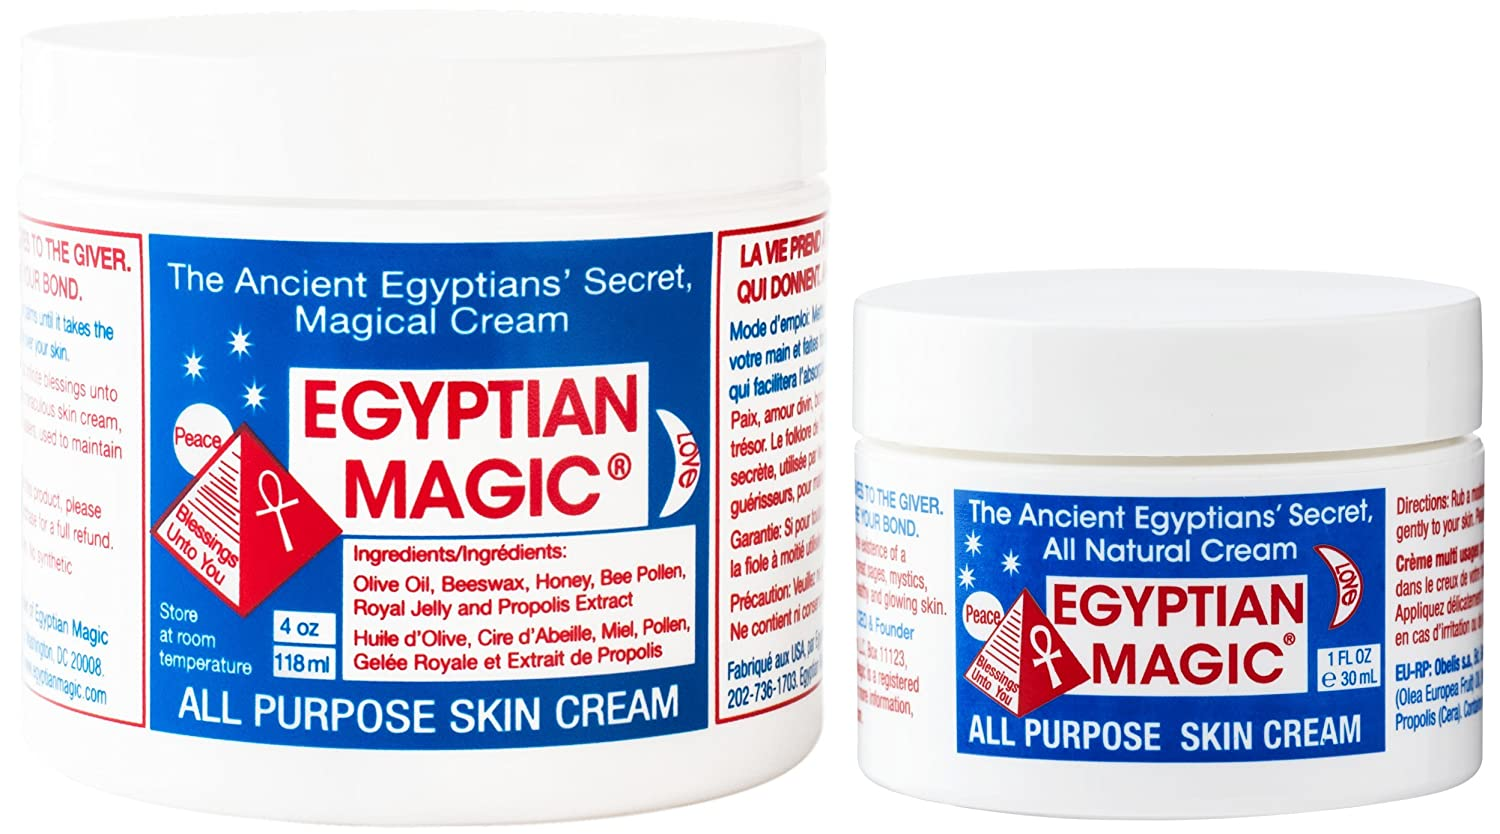 Egyptian Magic All Purpose Skin Cream   Skin, Hair, Anti Aging, Stretch Marks   100% Natural Ingredients   5 Ounce